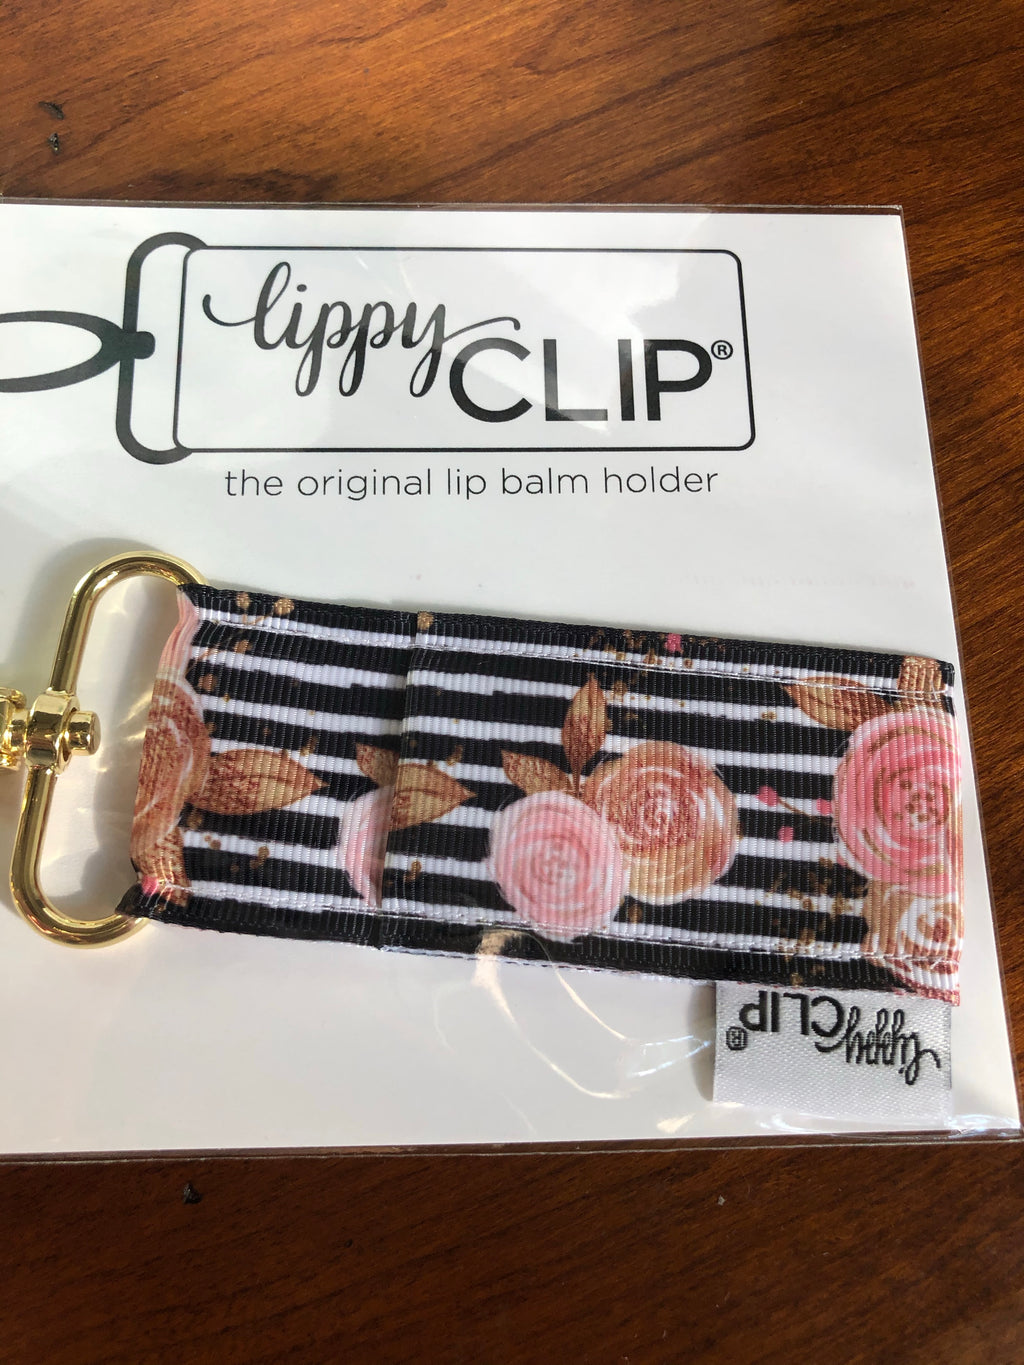 Lippy Clip - Back & Blush Floral